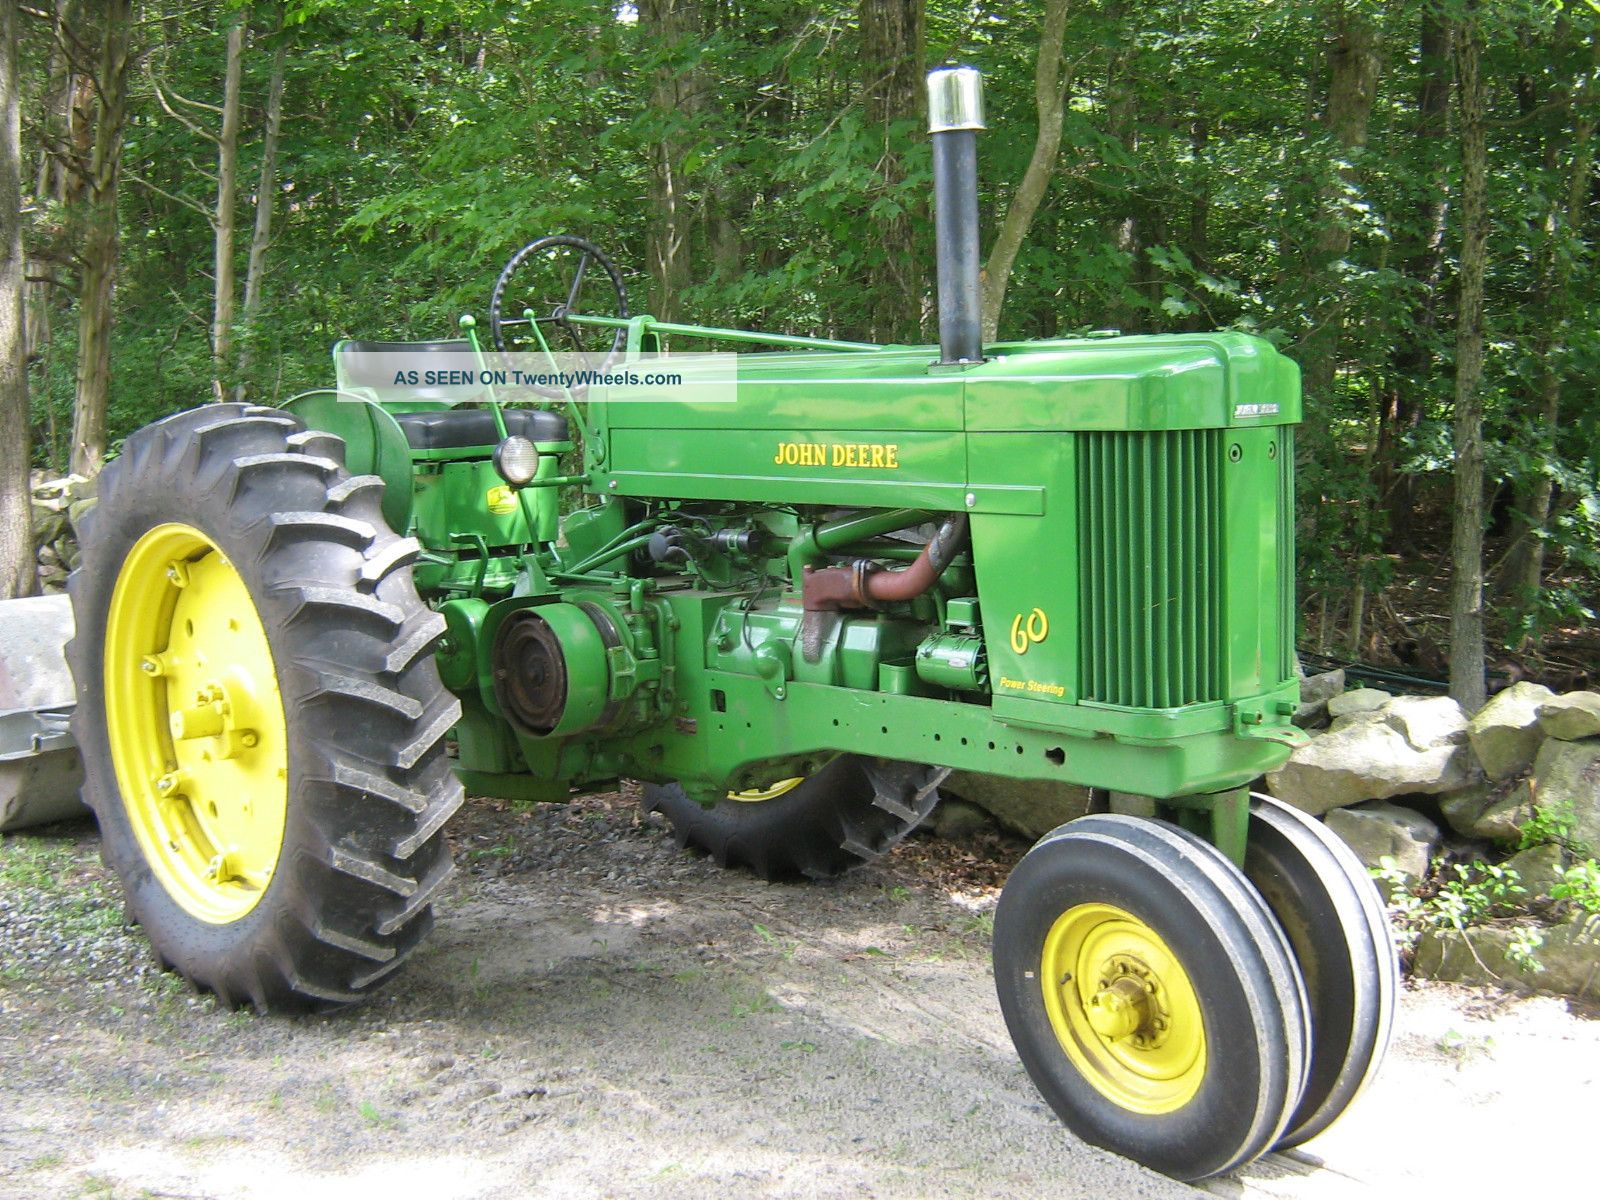 John Deere 60 Engine : John deere specifications bing images